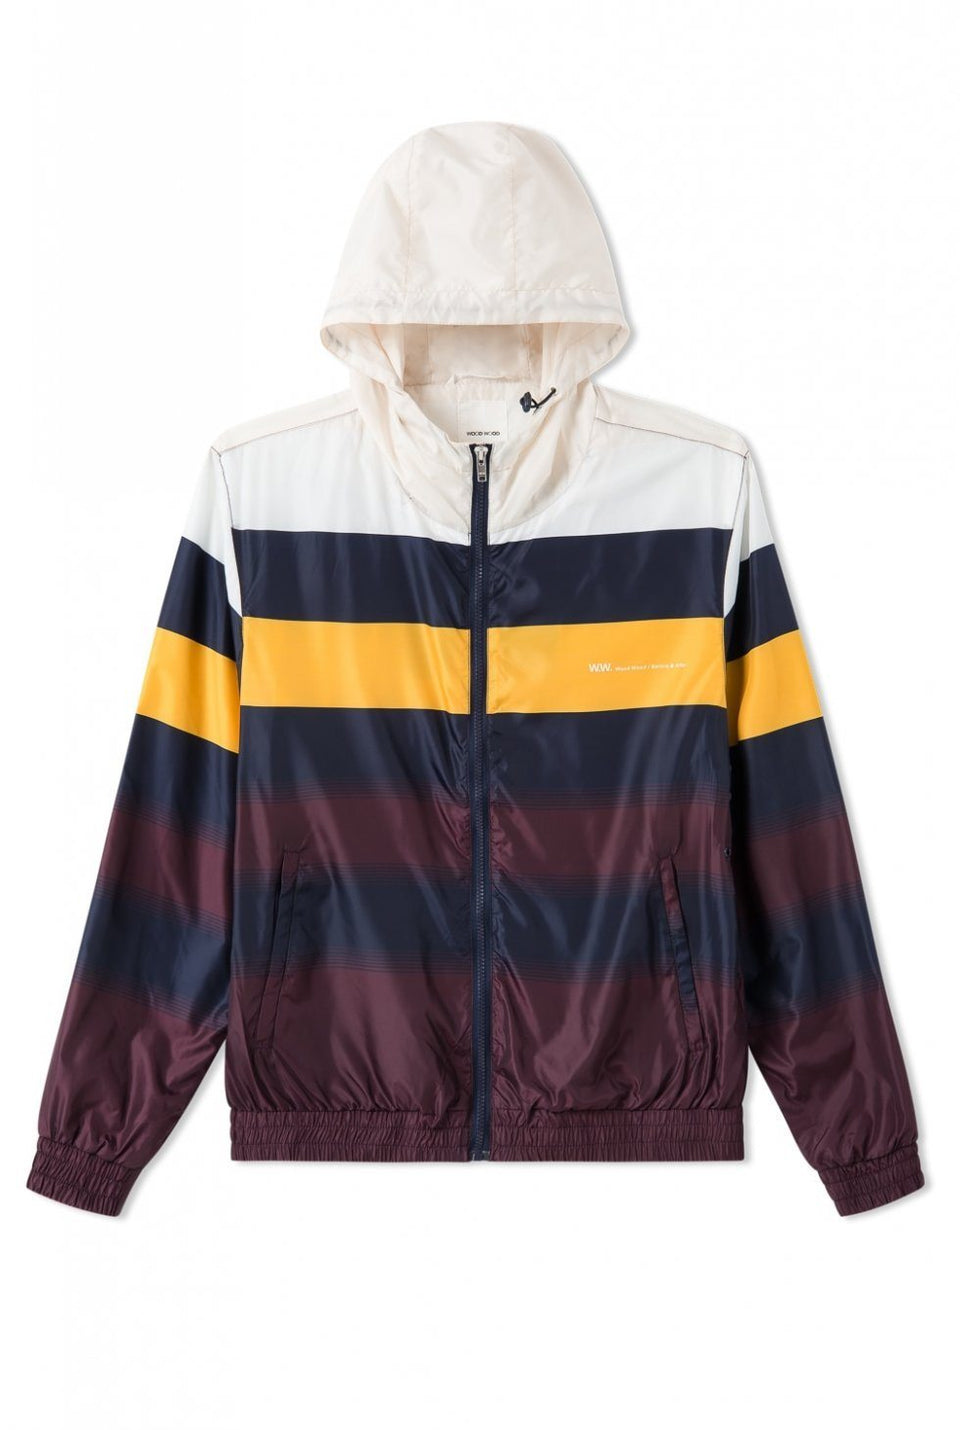 Emmett Jacket Navy Stripe Jacket Wood Wood - der ZEITGEIST